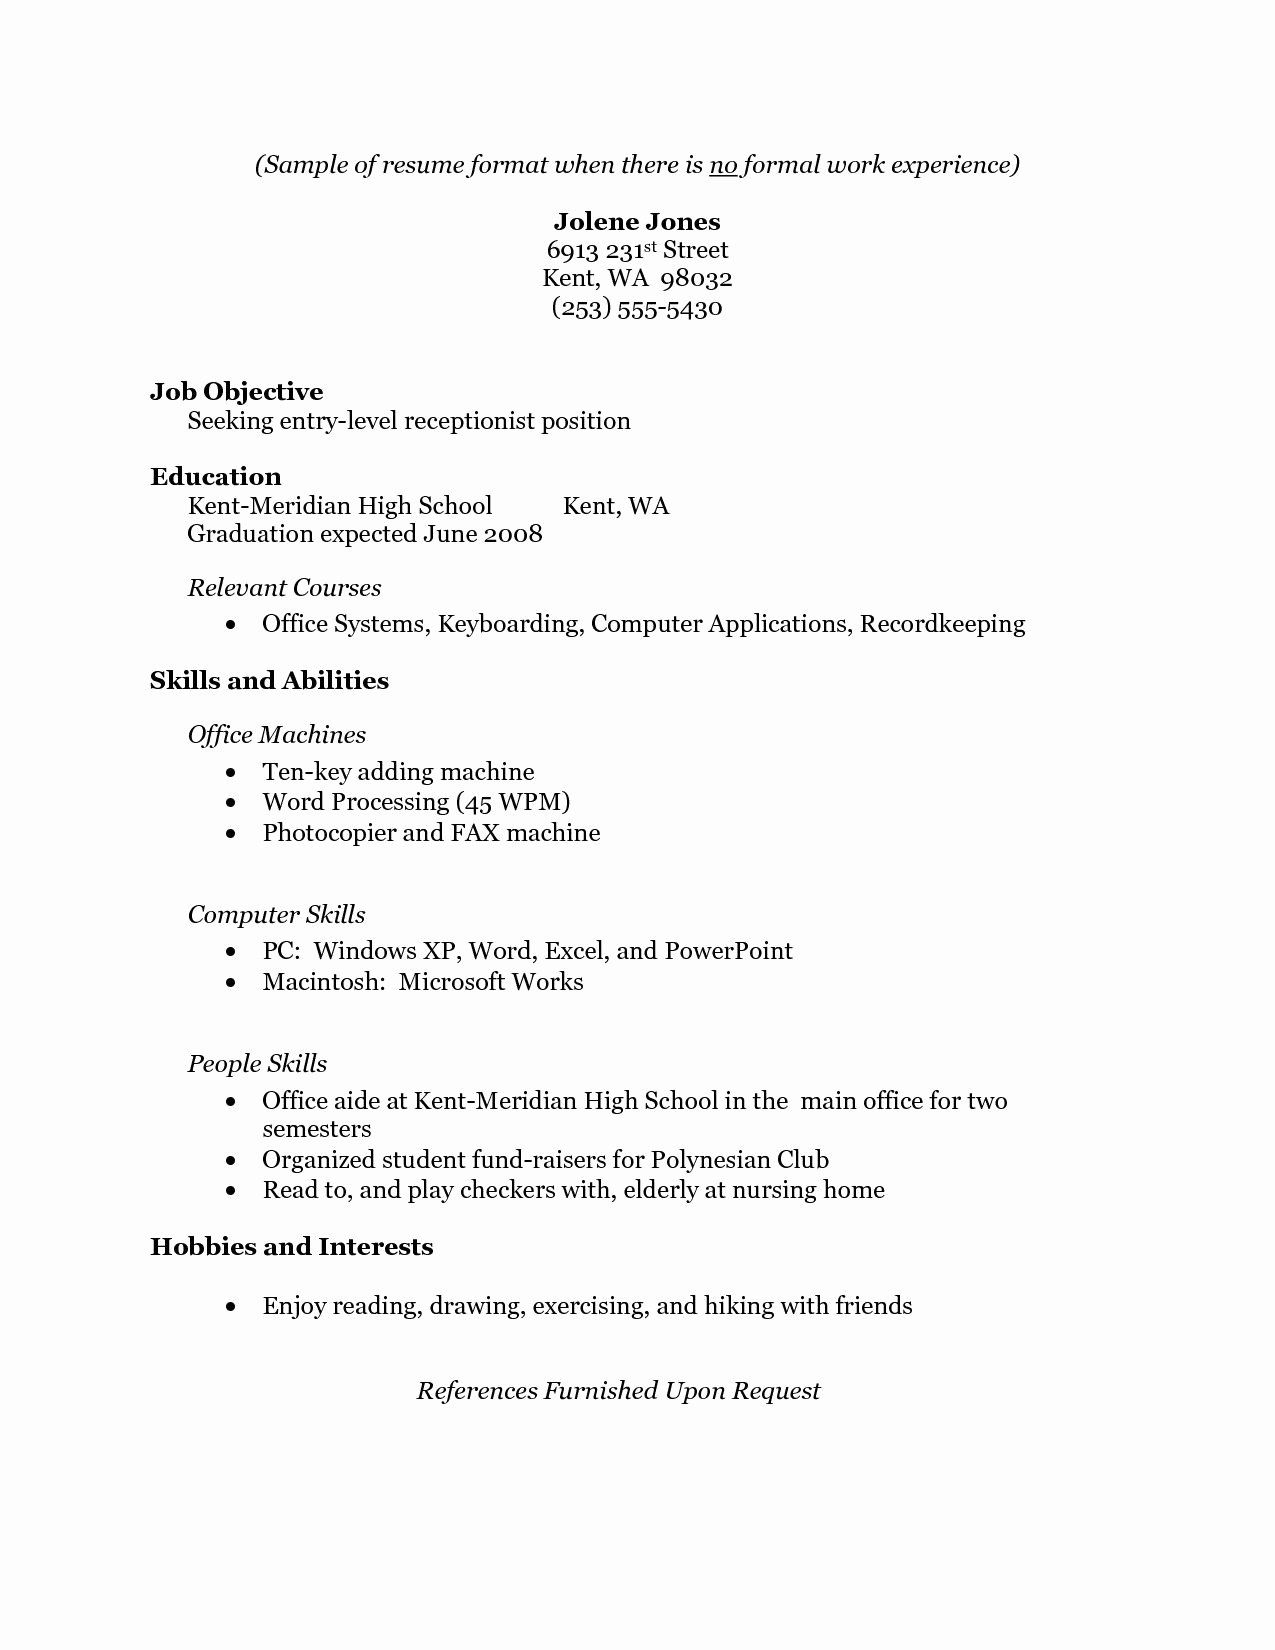 Resume For Receptionist With No Experience Printable Resume Template Job Resume Examples Professional Resume Examples Resume No Experience